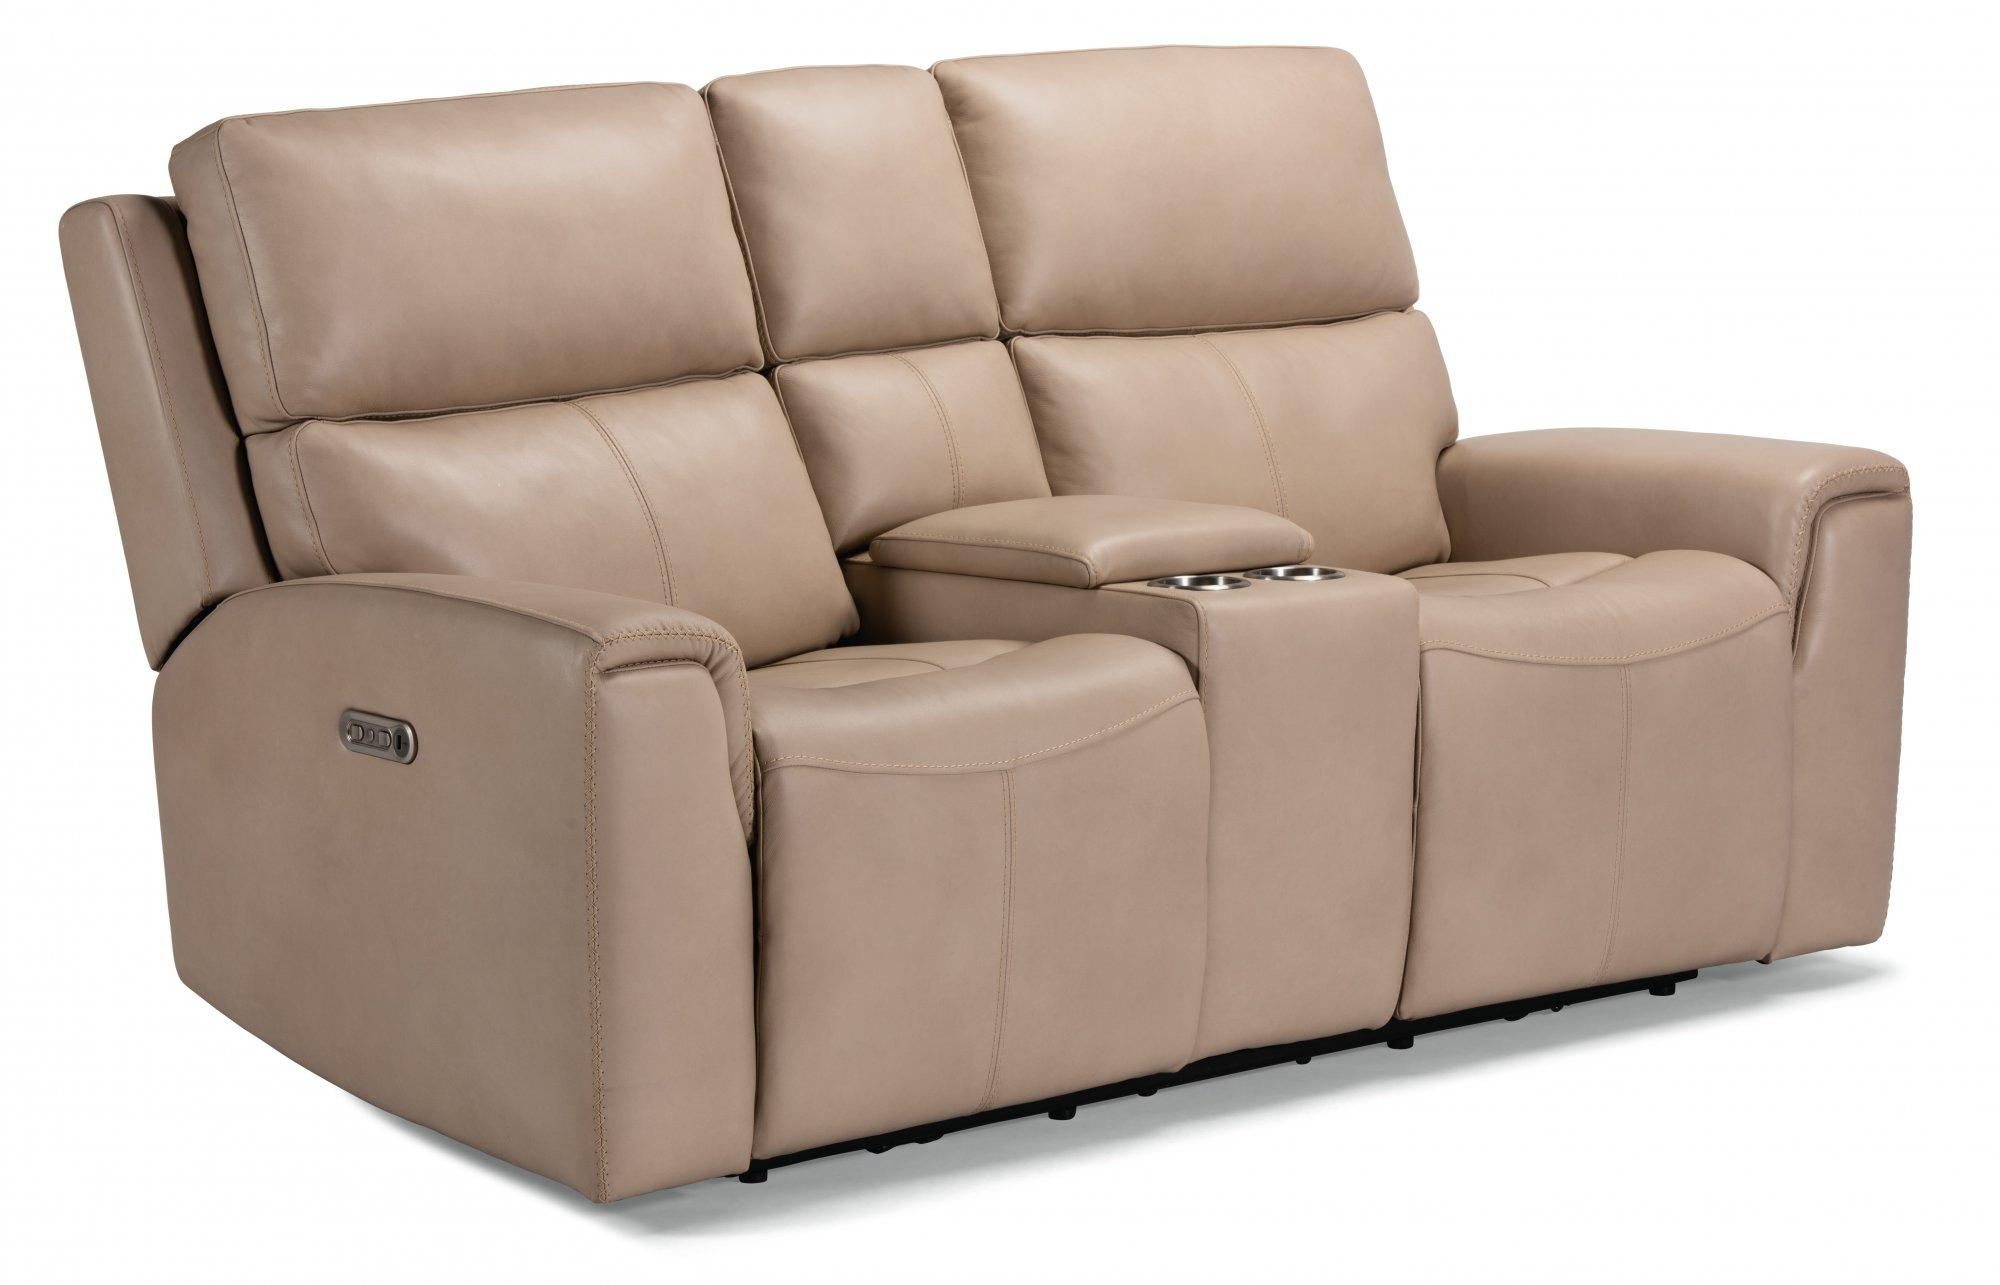 FlexsteelJarvis Power Reclining Loveseat With Console & Power Headrests